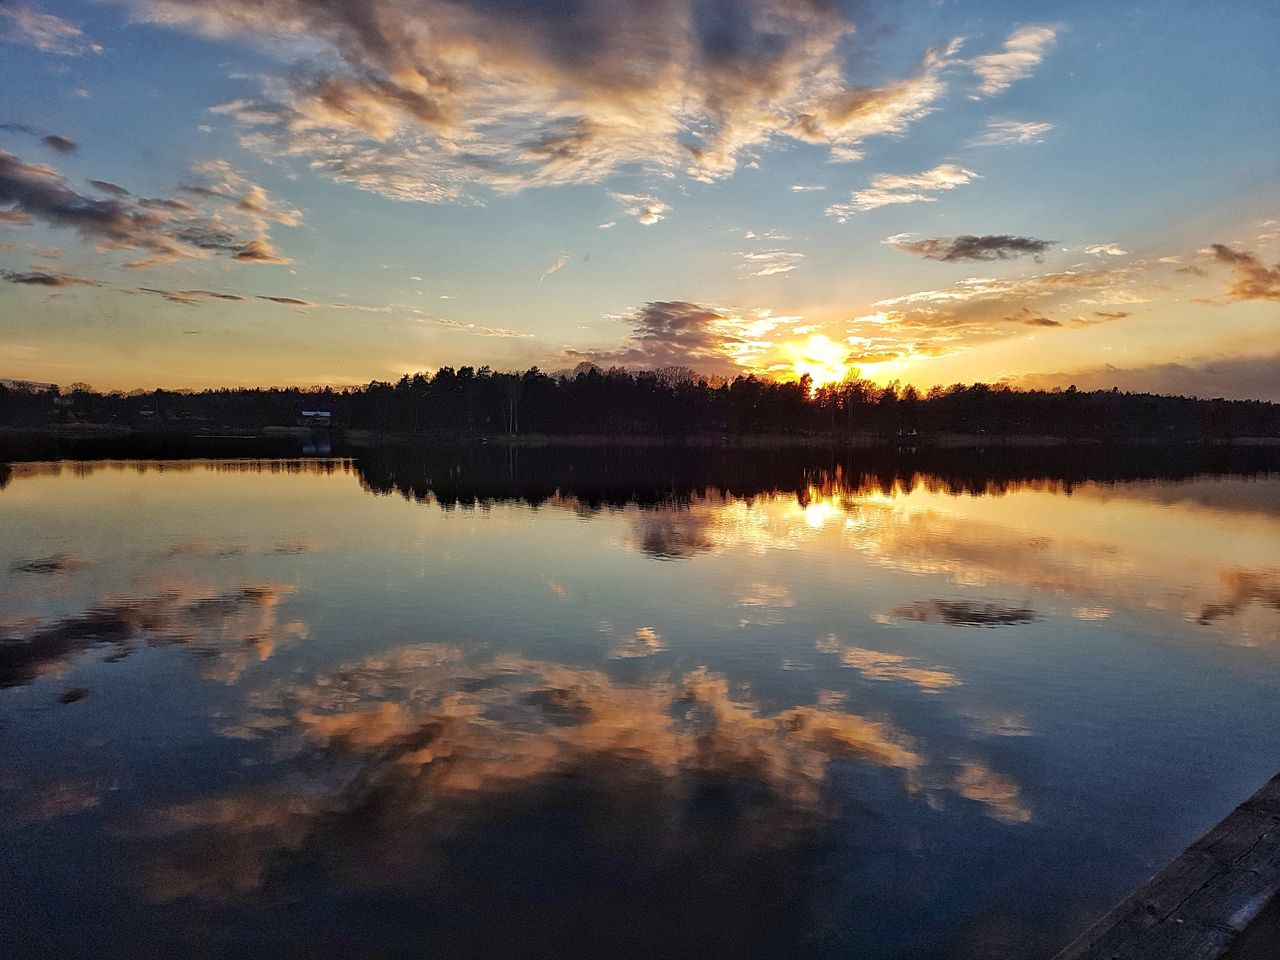 Reflection Sunset Water Lake Cloud - Sky Sky Nature Scenics Beauty In Nature Tranquility No People Outdoors Tranquil Scene Tree Day Sunset_collection Reflection Nature Beauty In Nature Malephotographerofthemonth EyeEm Nature Lover